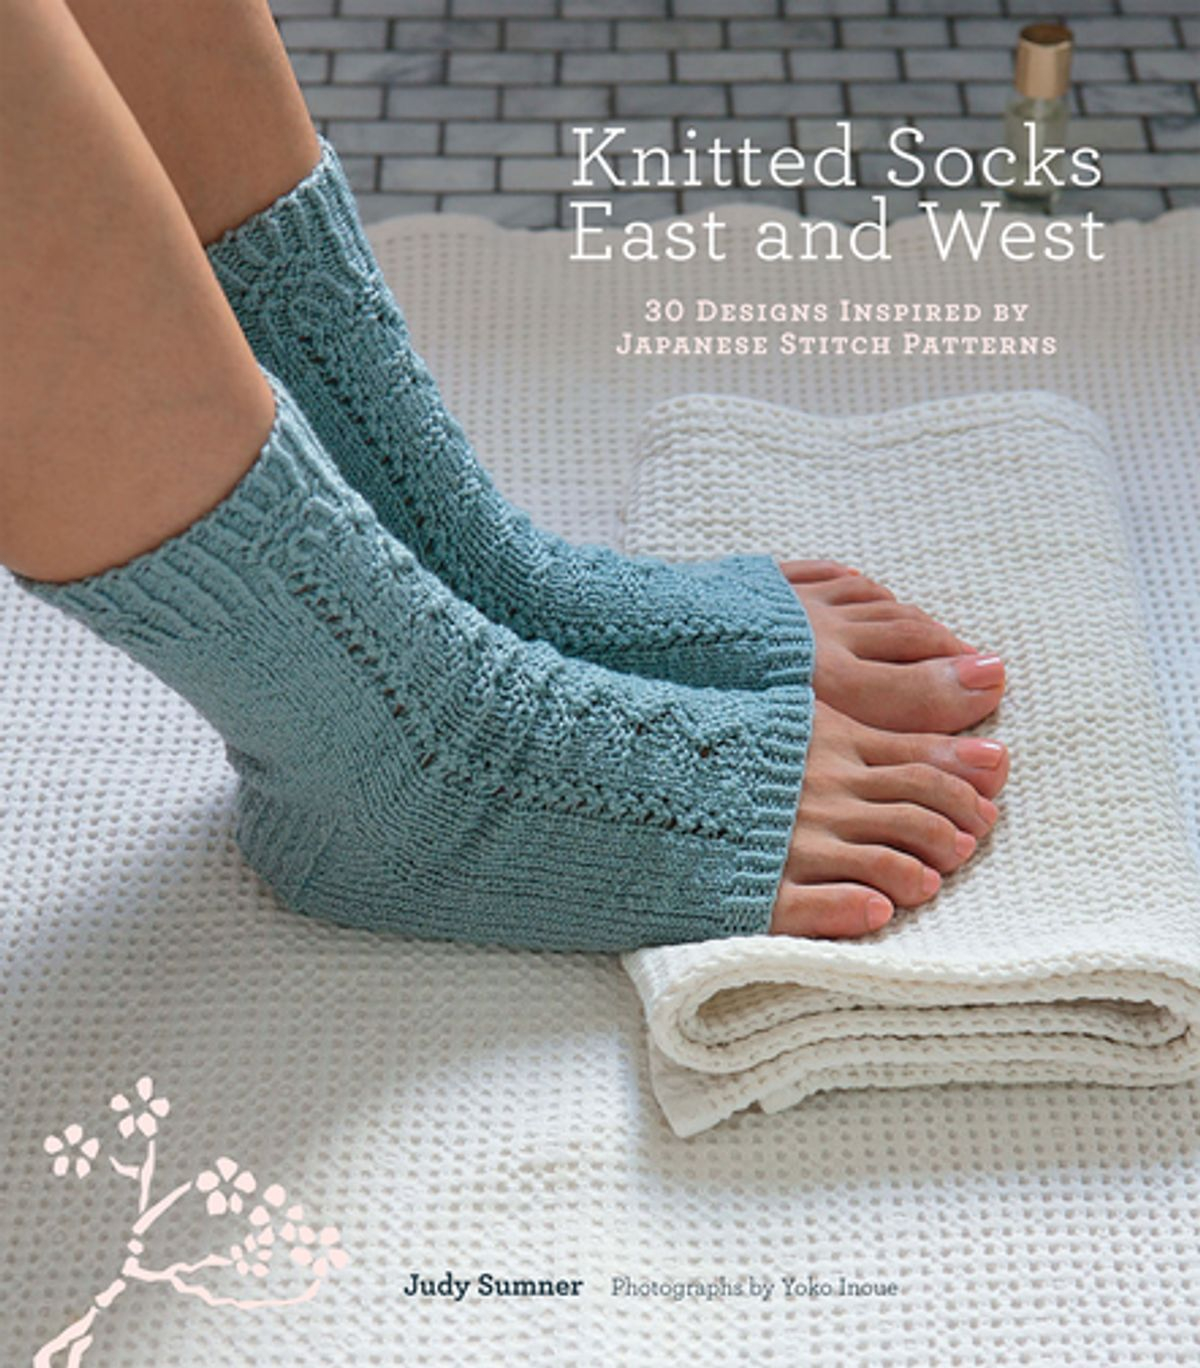 Knitting Patterns For Socks Knitted Socks East And West Ebook Judy Sumner Rakuten Kobo